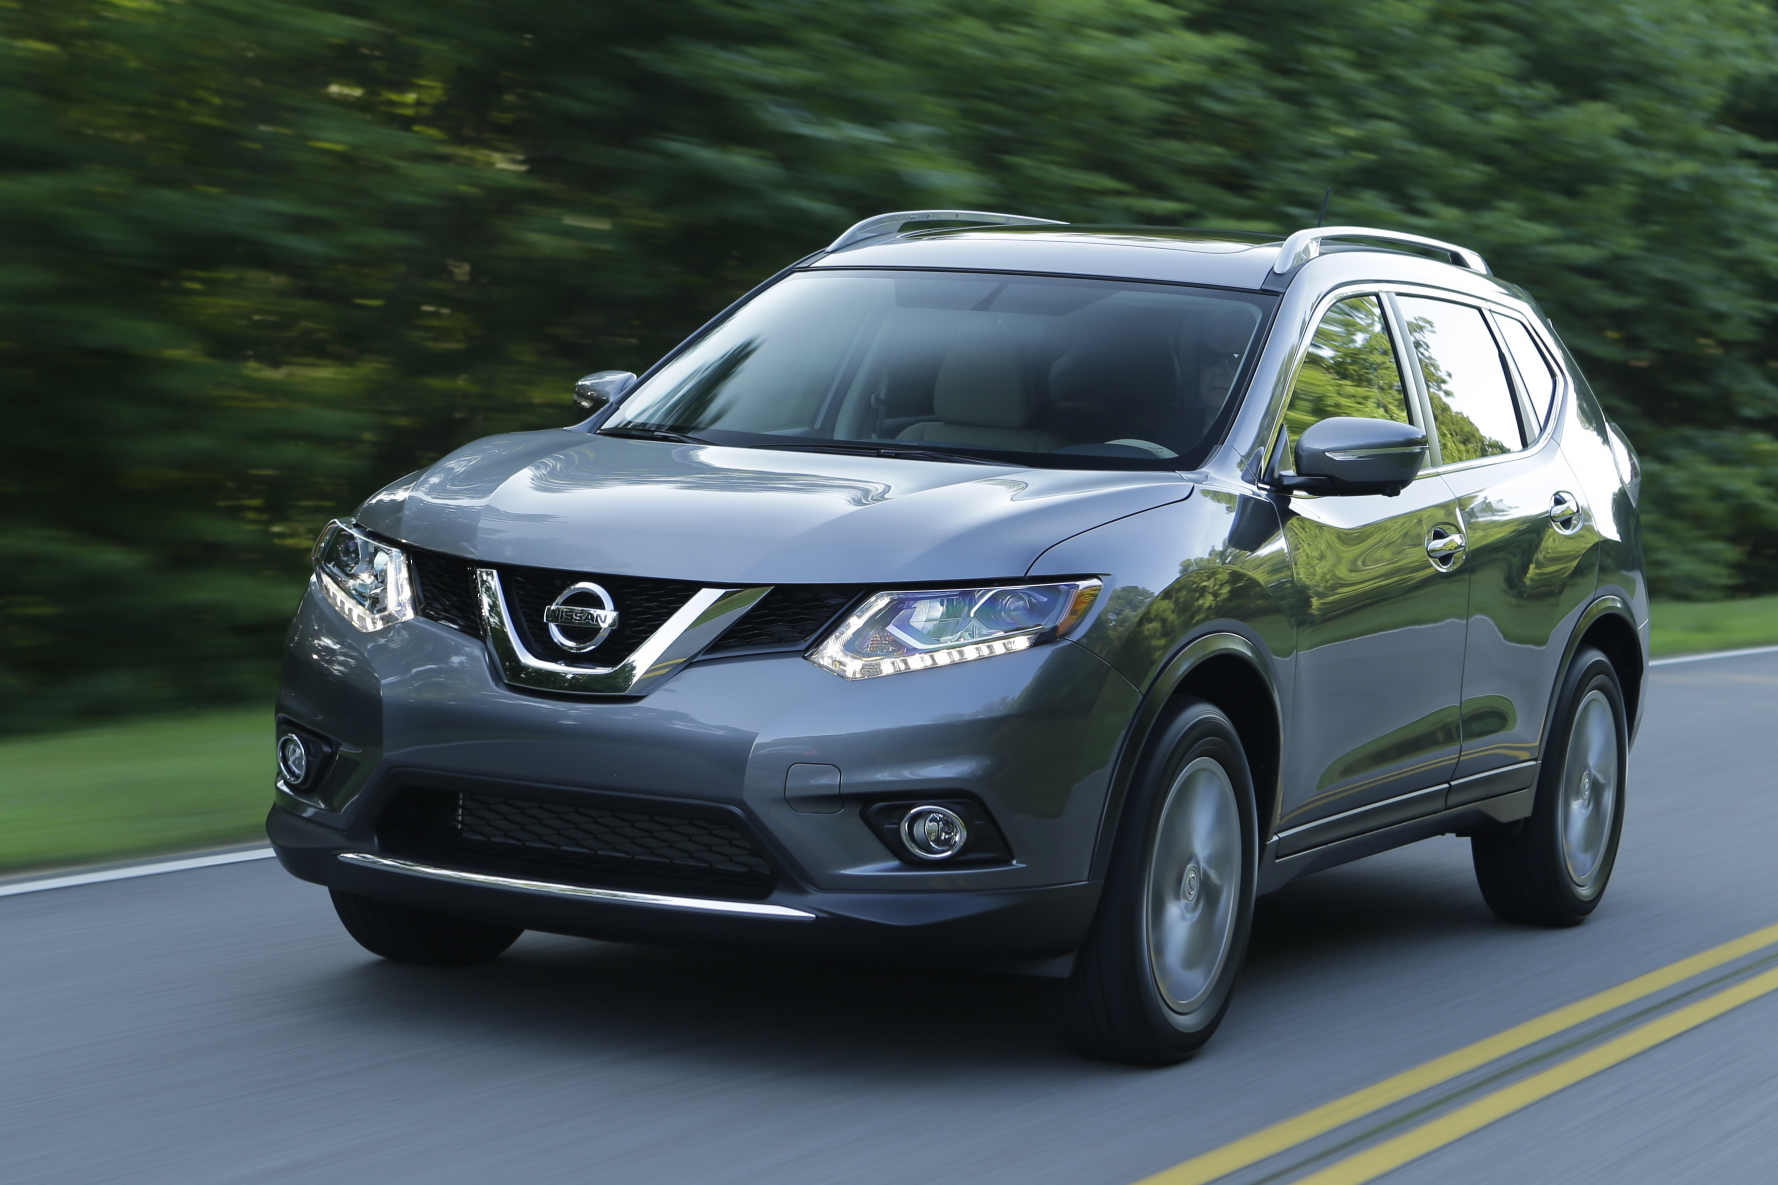 2015 nissan rogue pricing announced autoevolution. Black Bedroom Furniture Sets. Home Design Ideas